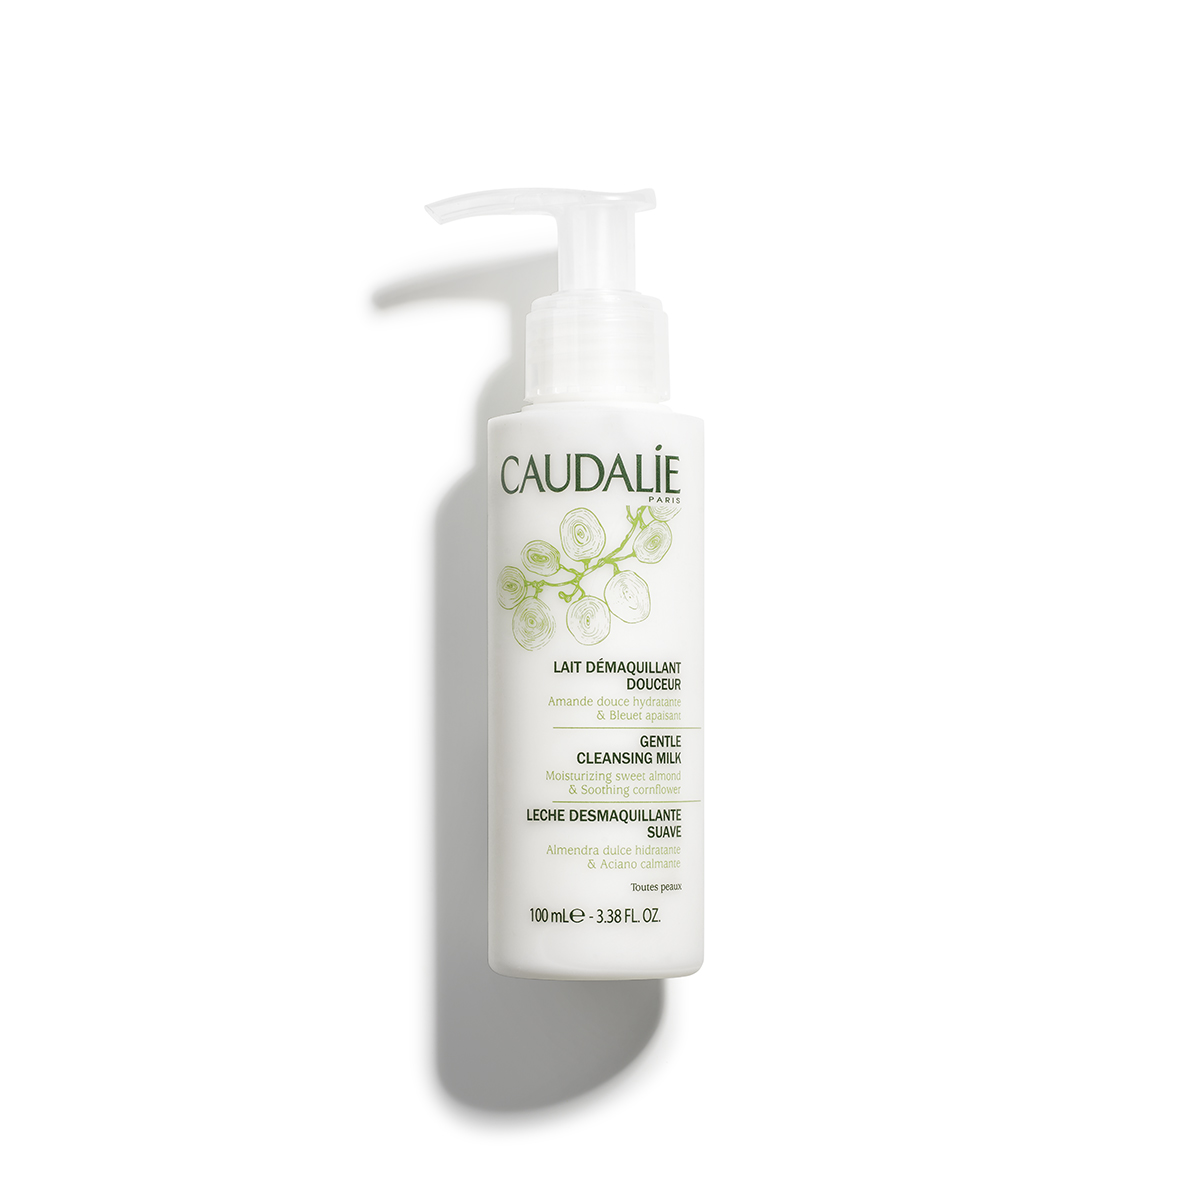 Gentle Cleansing Milk - 100ml